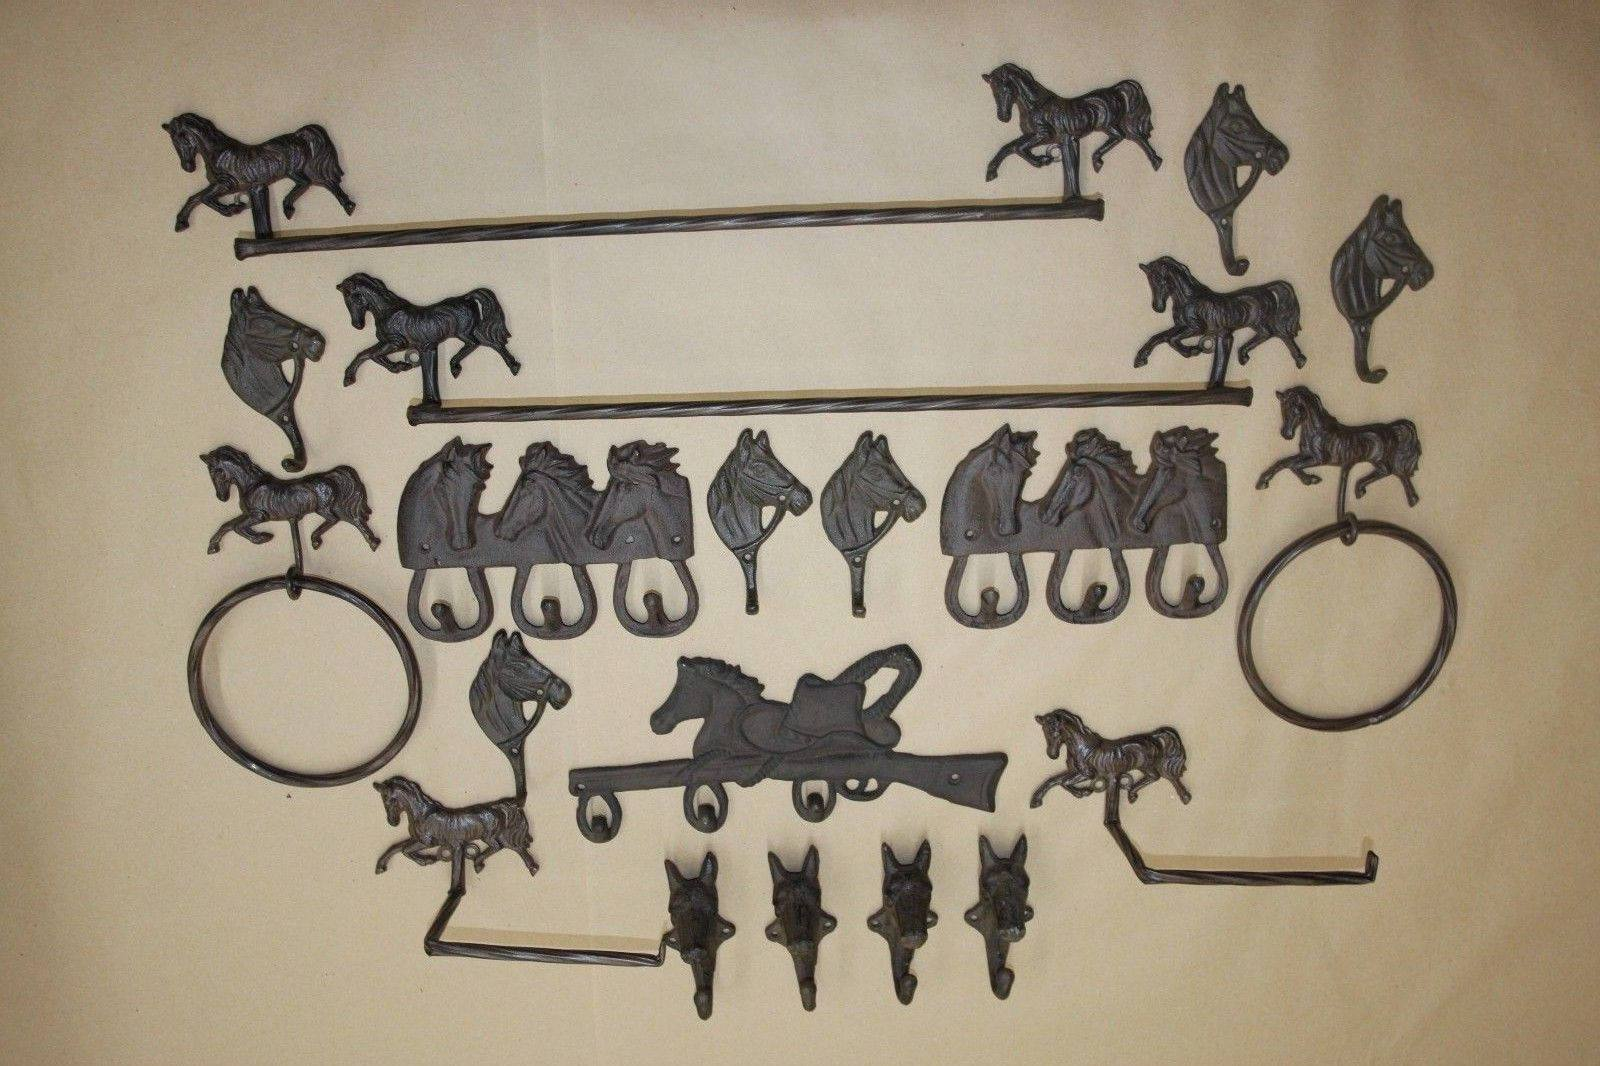 20) Deluxe Equestrian Theme Bath Decor Collection, 20 pieces, Towel Bar, TP holder, Towel Ring, Towel Hooks, Georgetown, Free Ship